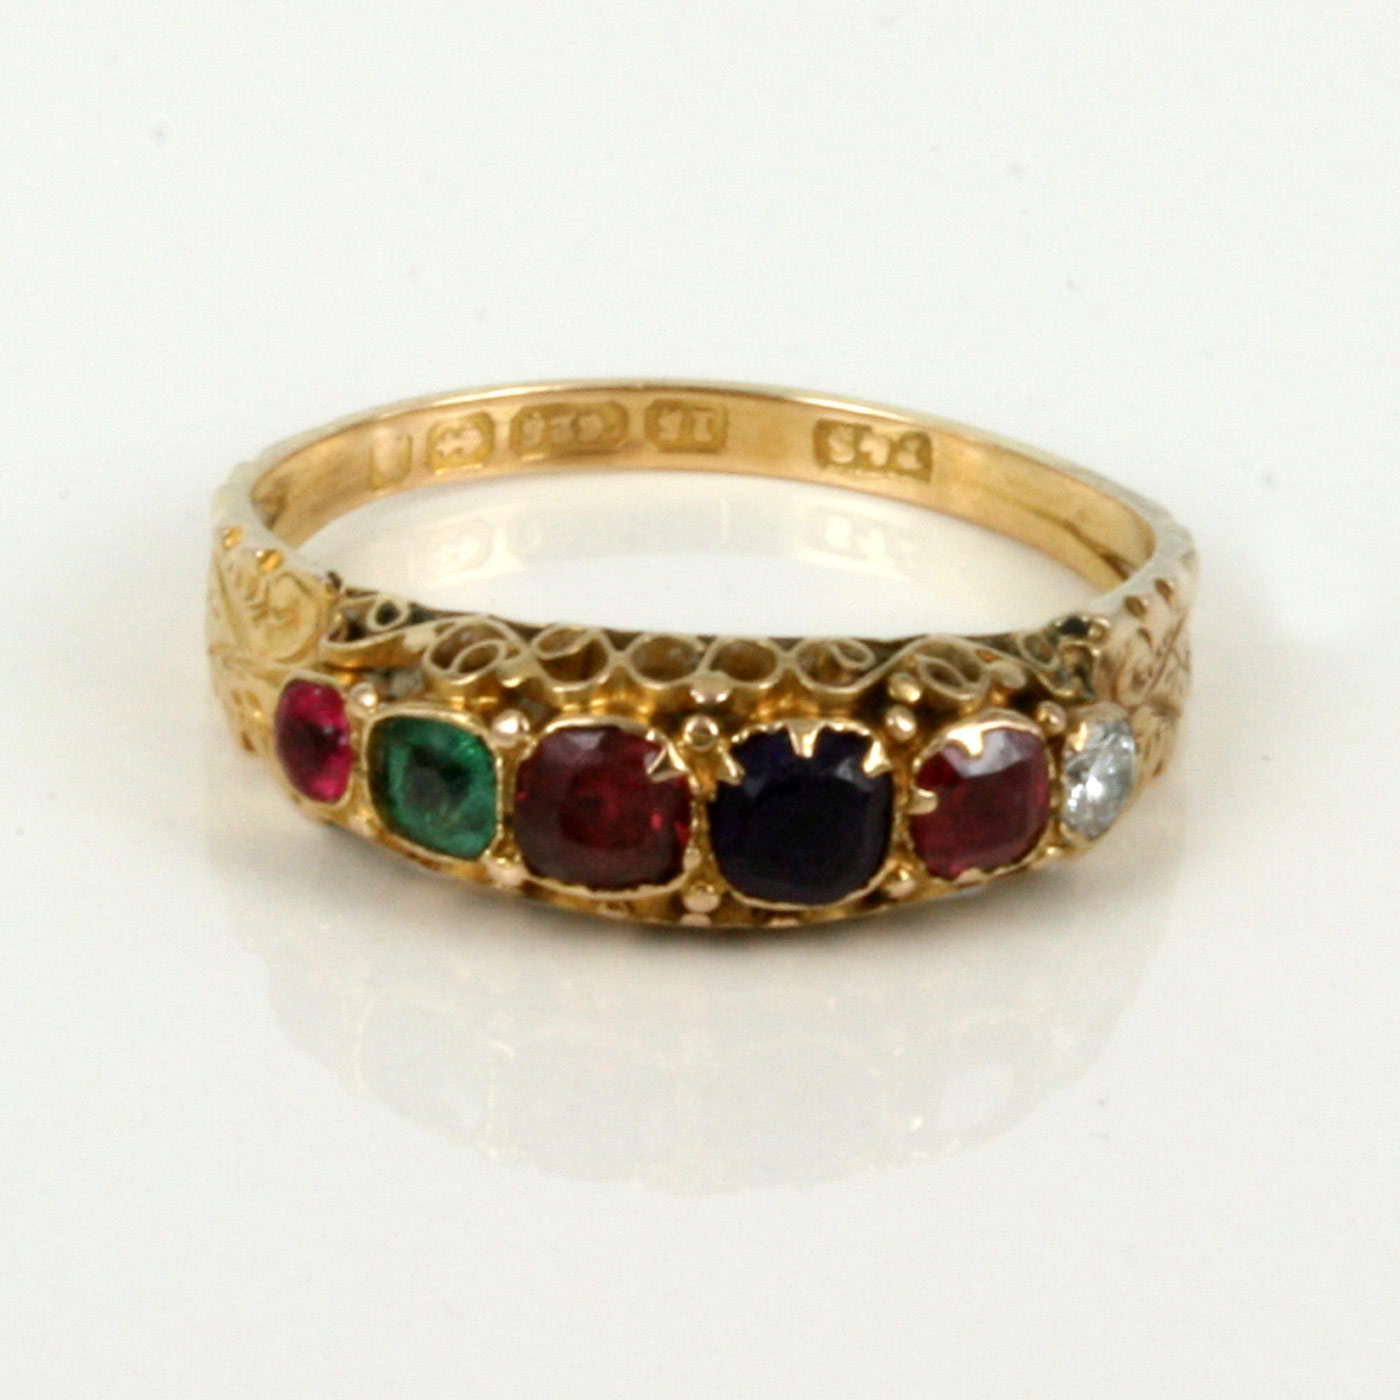 Buy 15ct Antique Regard Ring From The 1890 S Sold Items